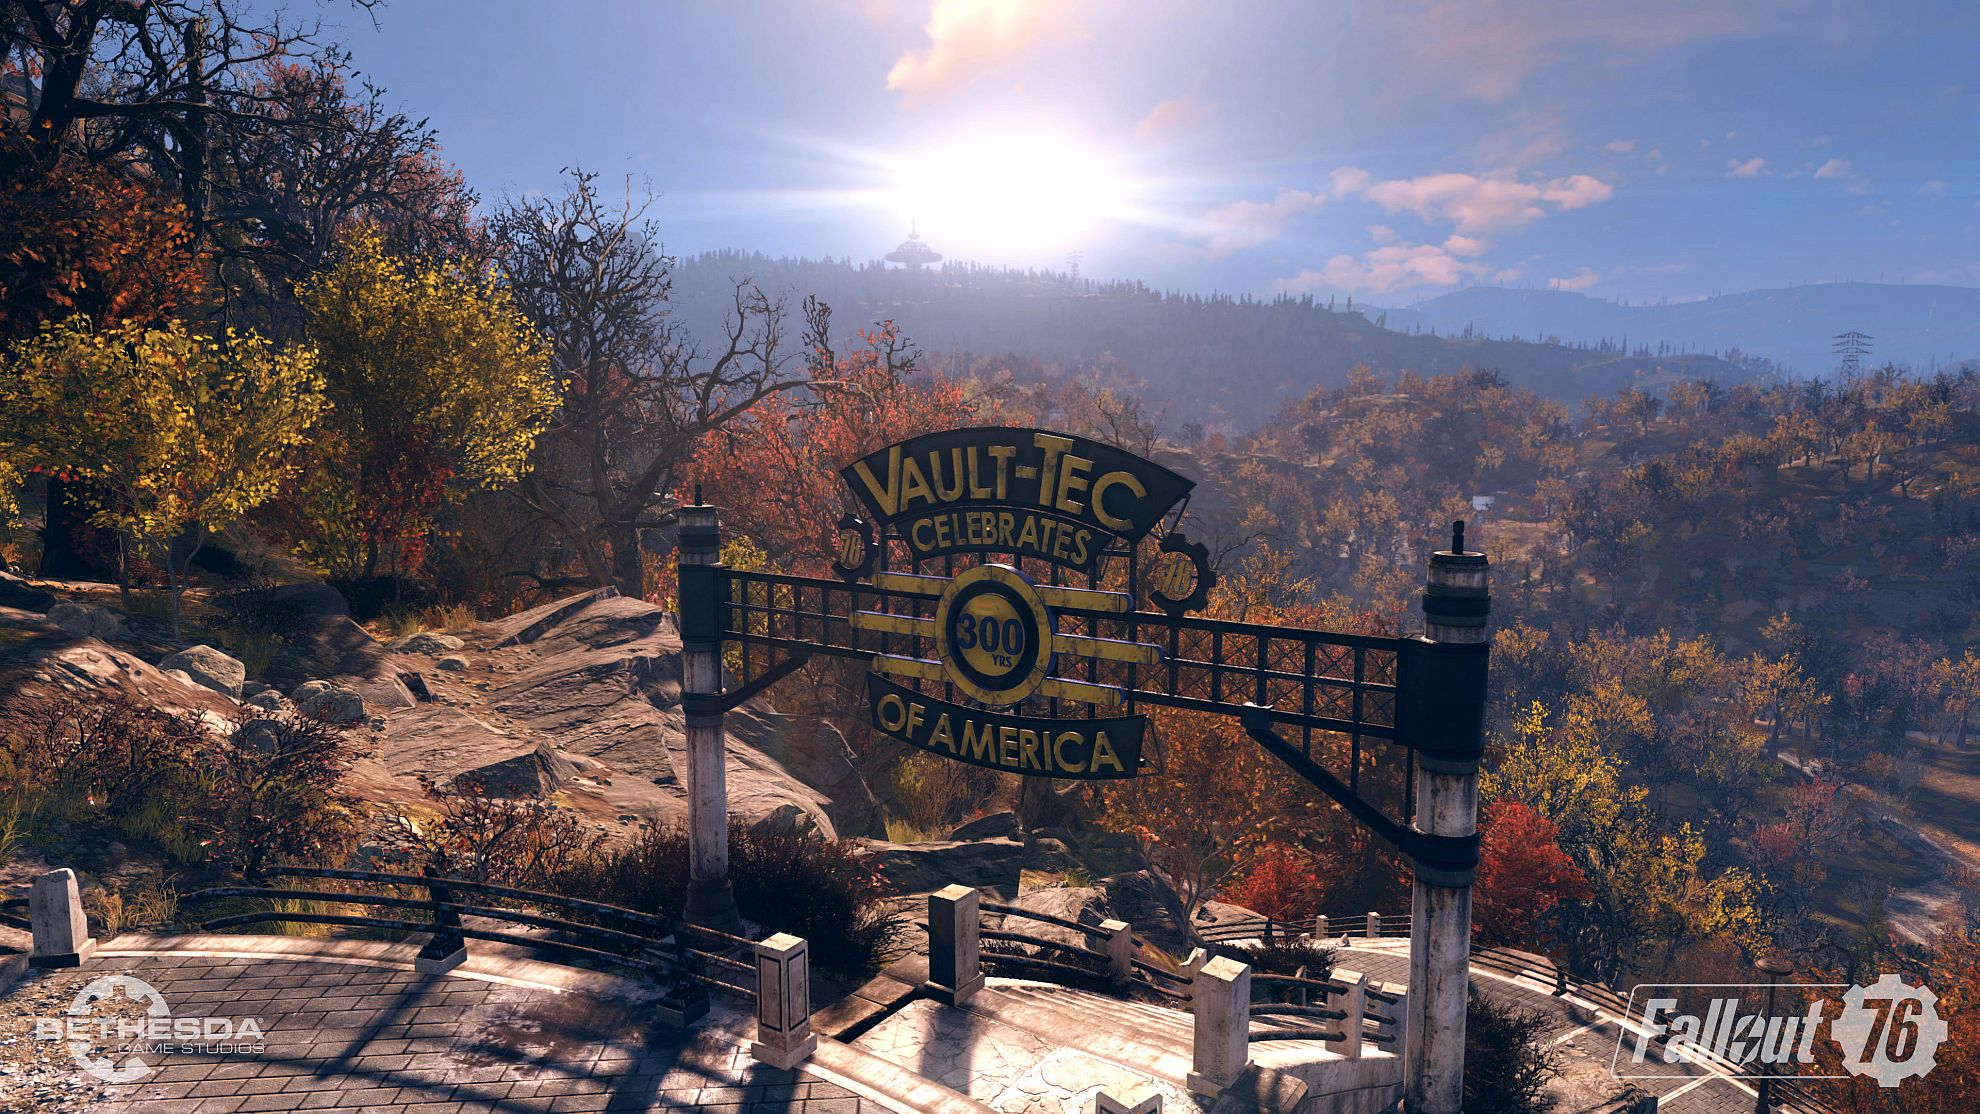 Fallout 76 is a